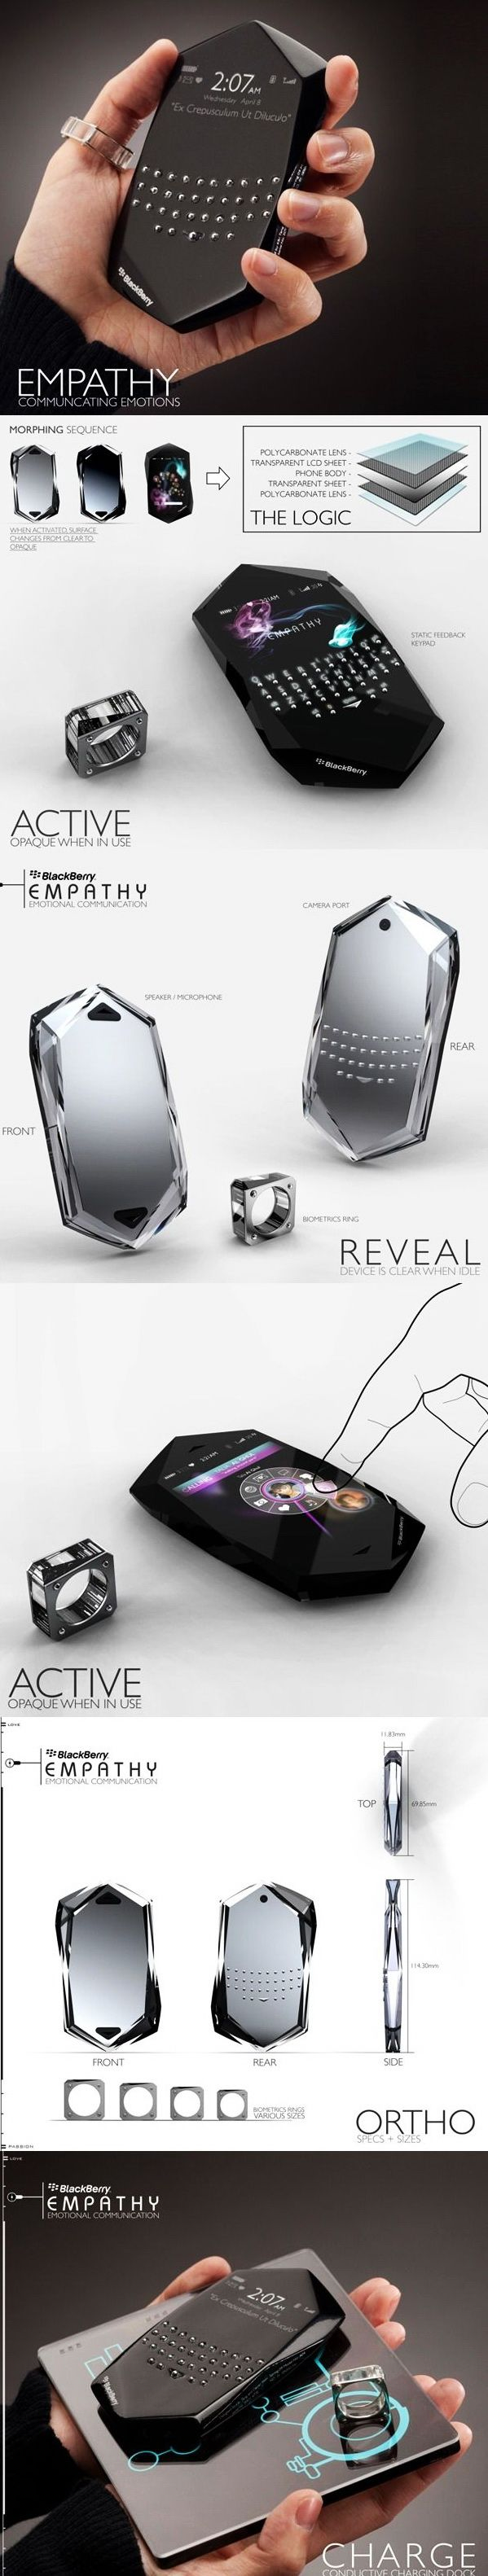 7 Best Gadgets Images On Pinterest Cool Things Electronic Devices Luxury Iring Crystal Silver